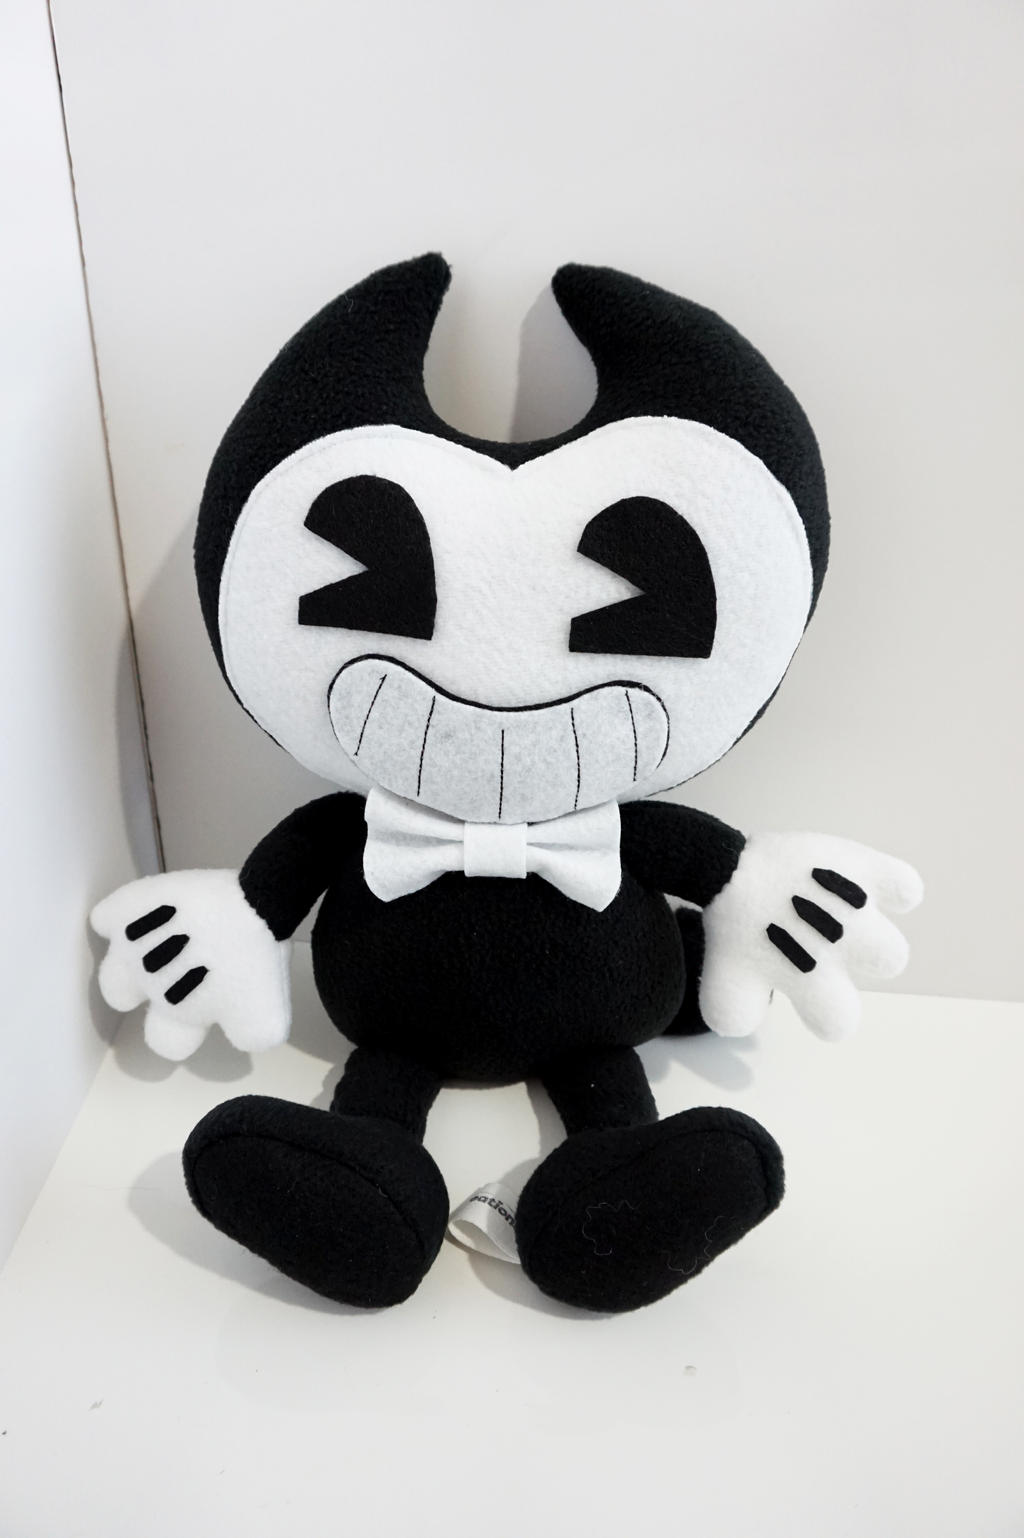 Bendy Plush by FabroCreations on DeviantArt